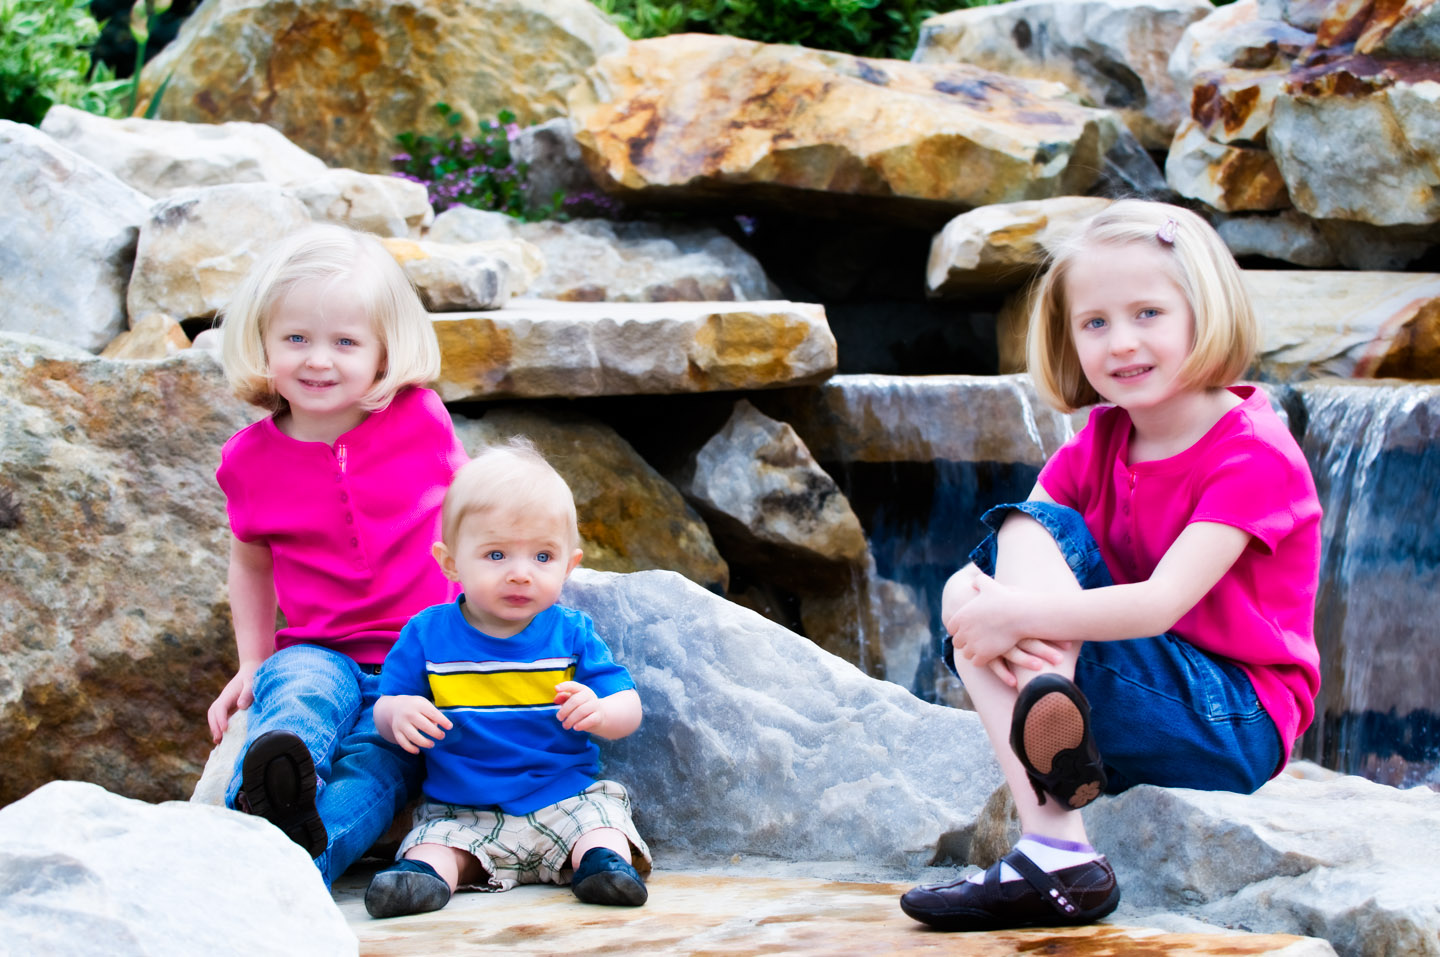 The Bush Kids and the BYU waterfall